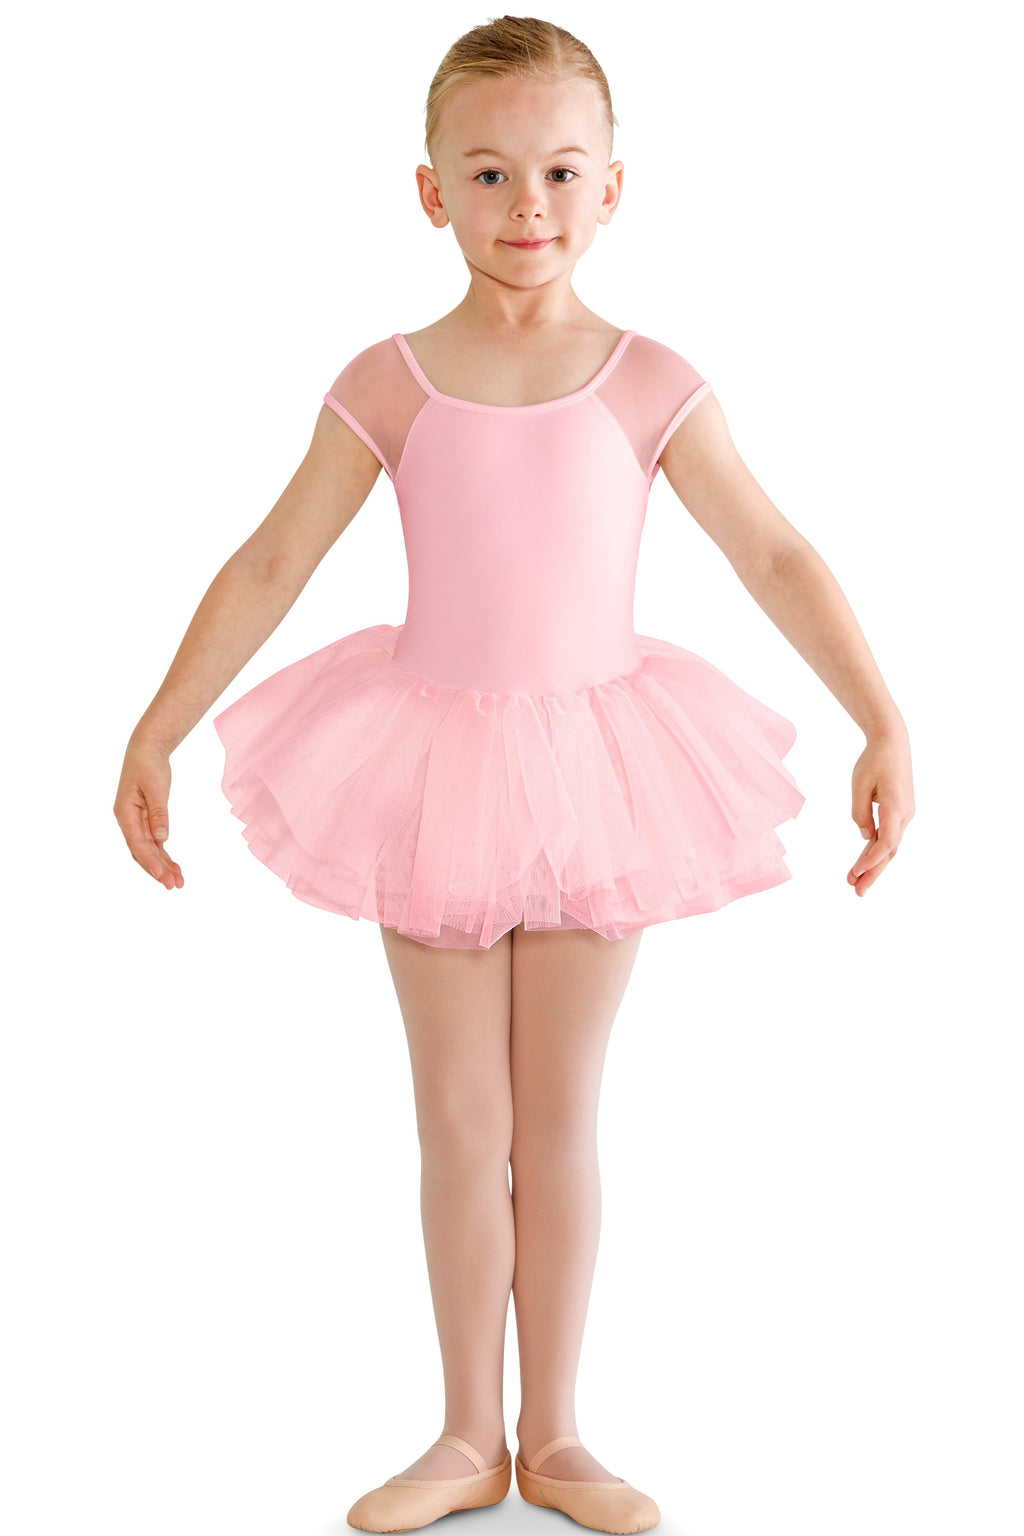 Bloch Leotard with attached tu-tu skirt